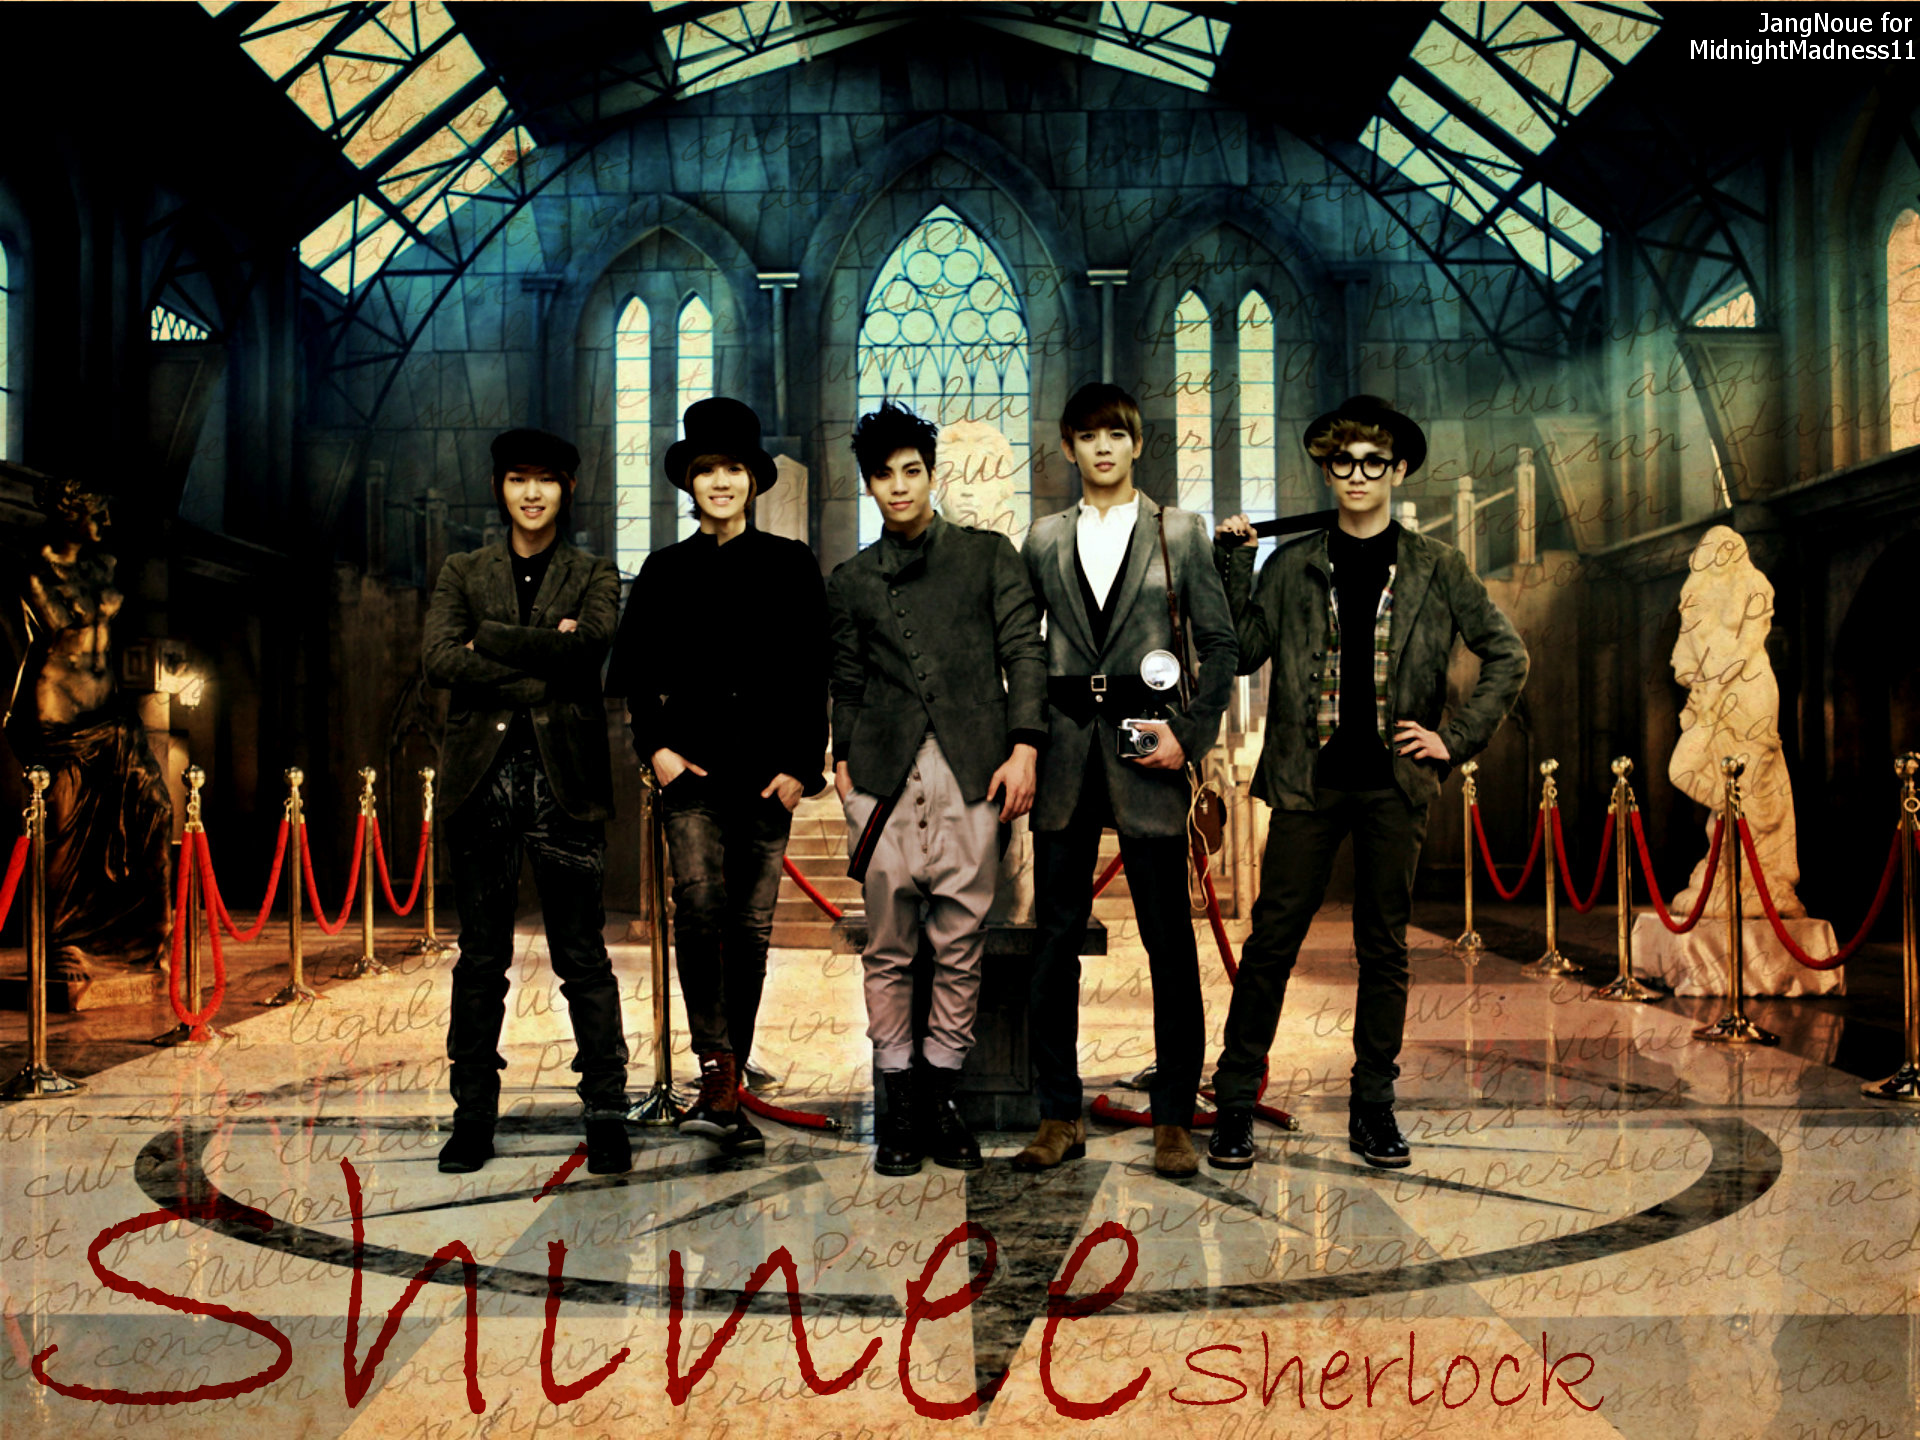 Sherlock Fan Art Wallpaper Shinee Sherlock By Jangnoue Dhlw